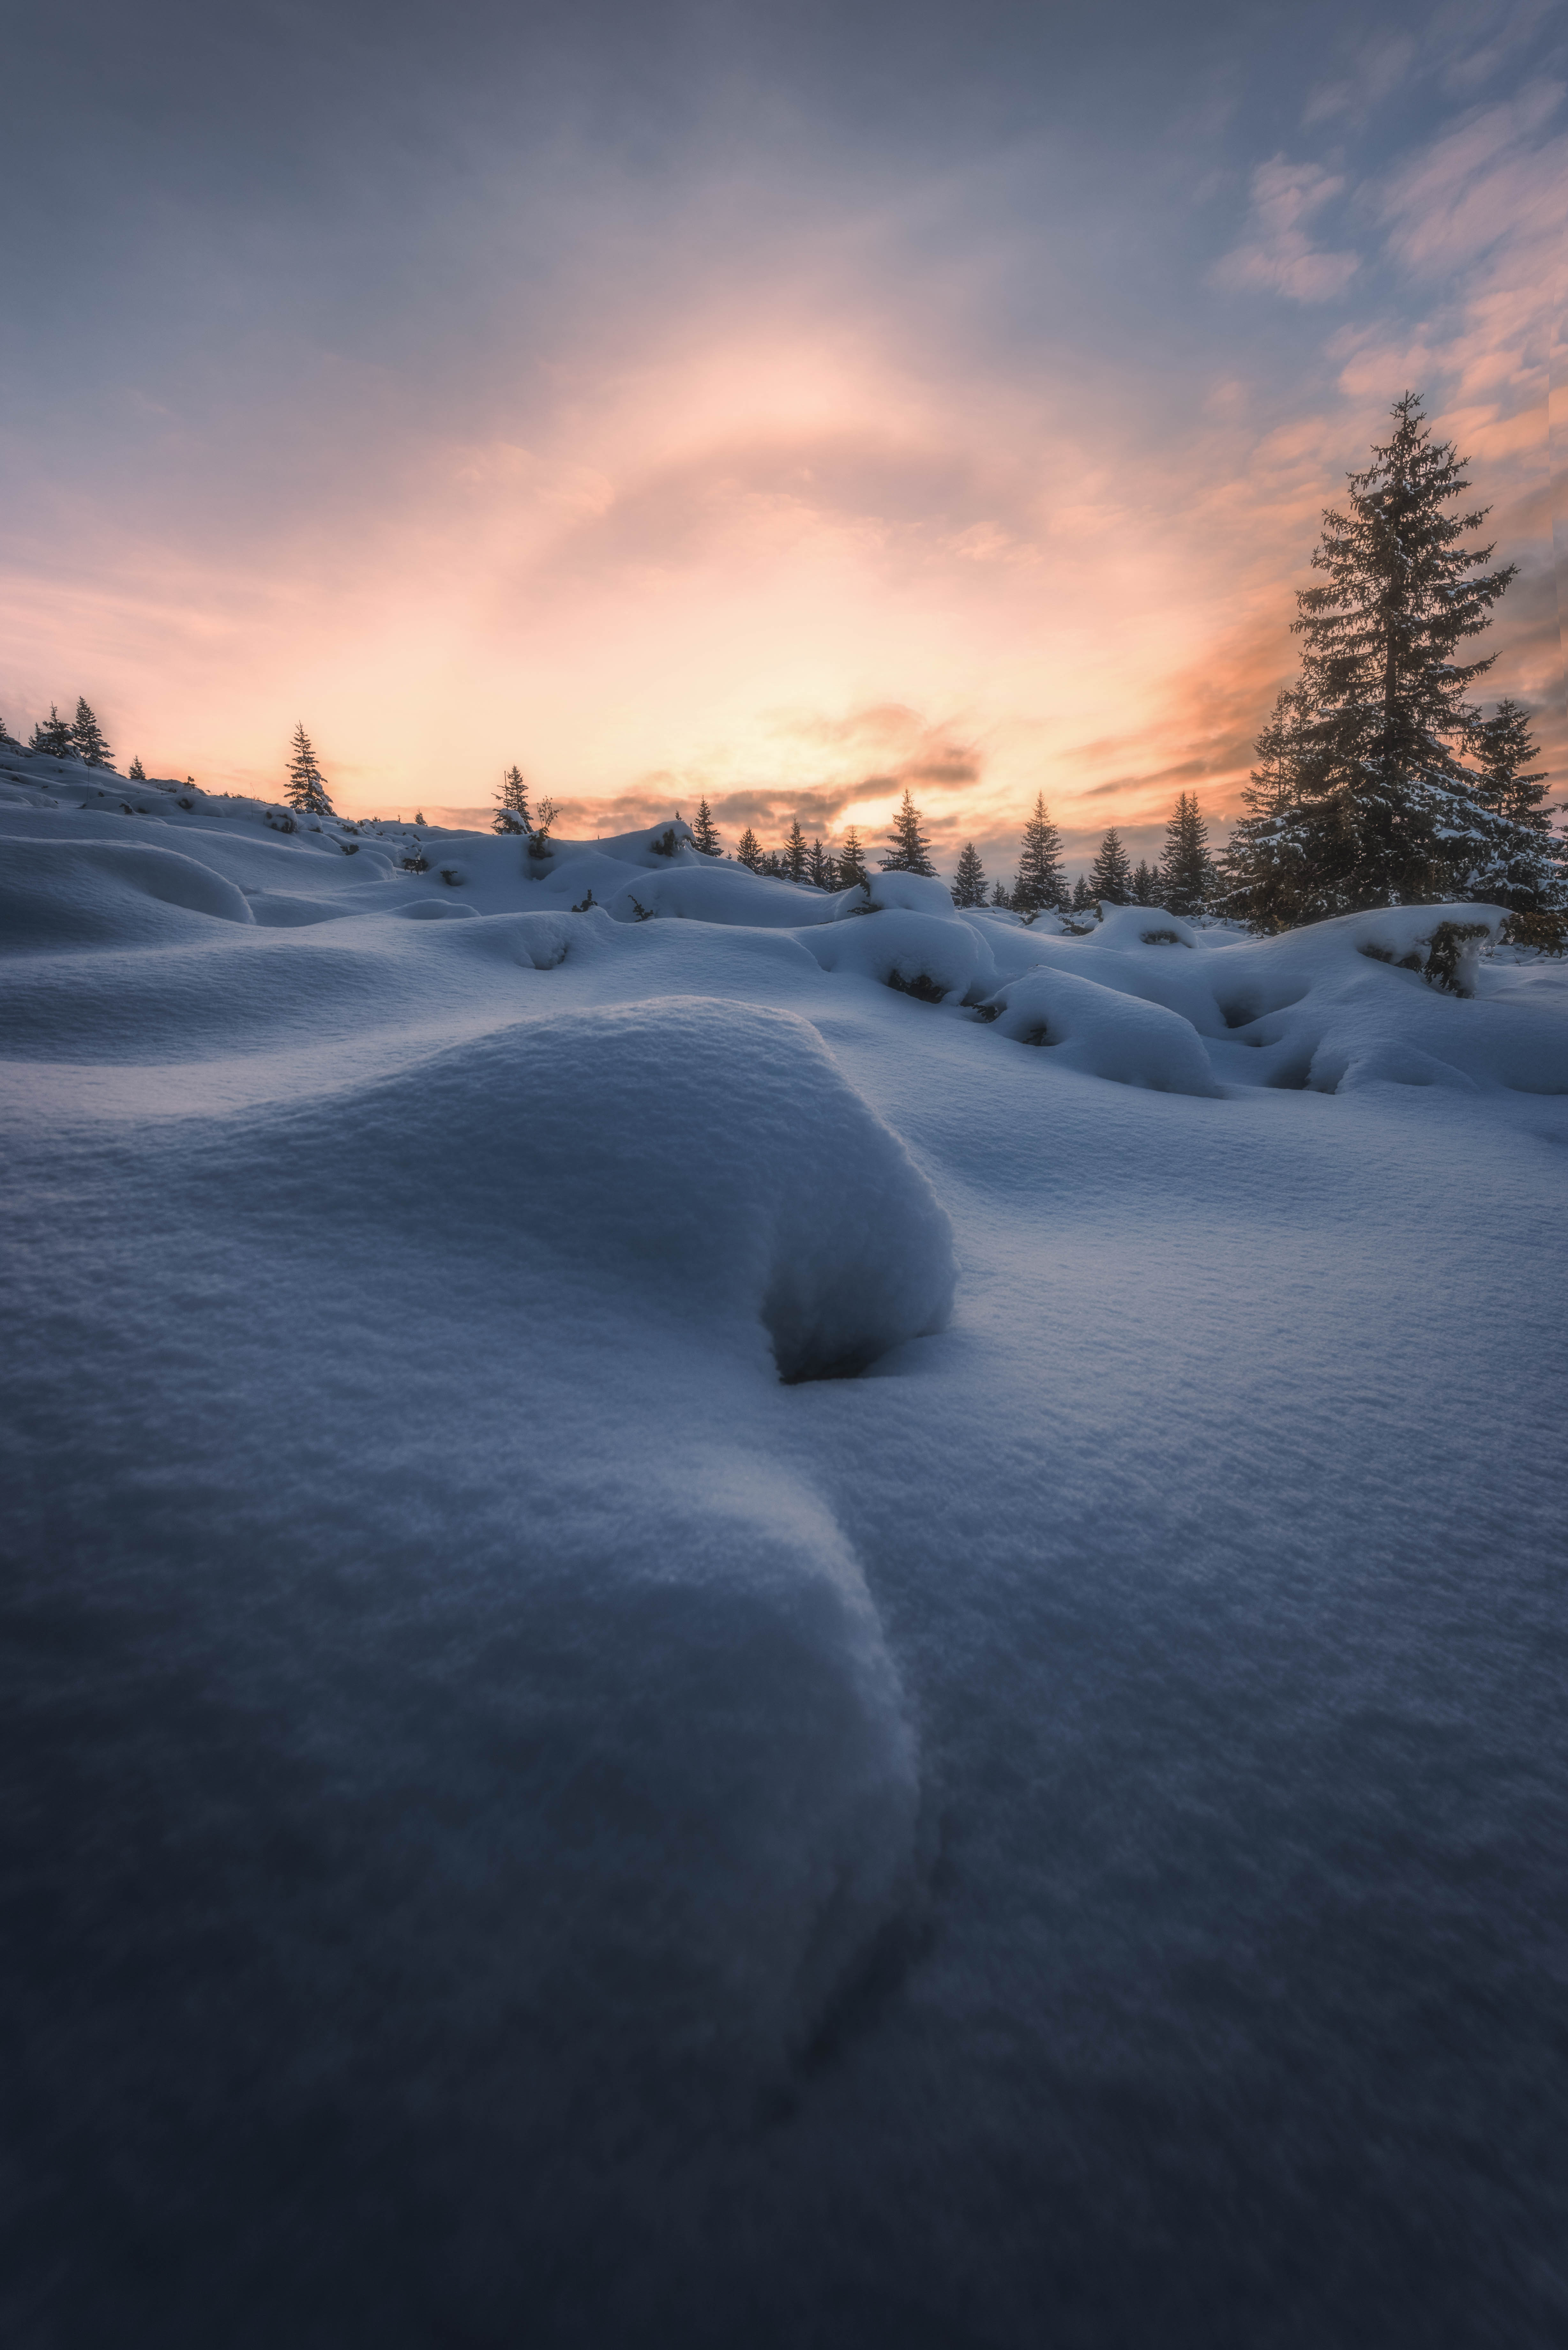 #landscape#nature#winter, Hristev Dimo